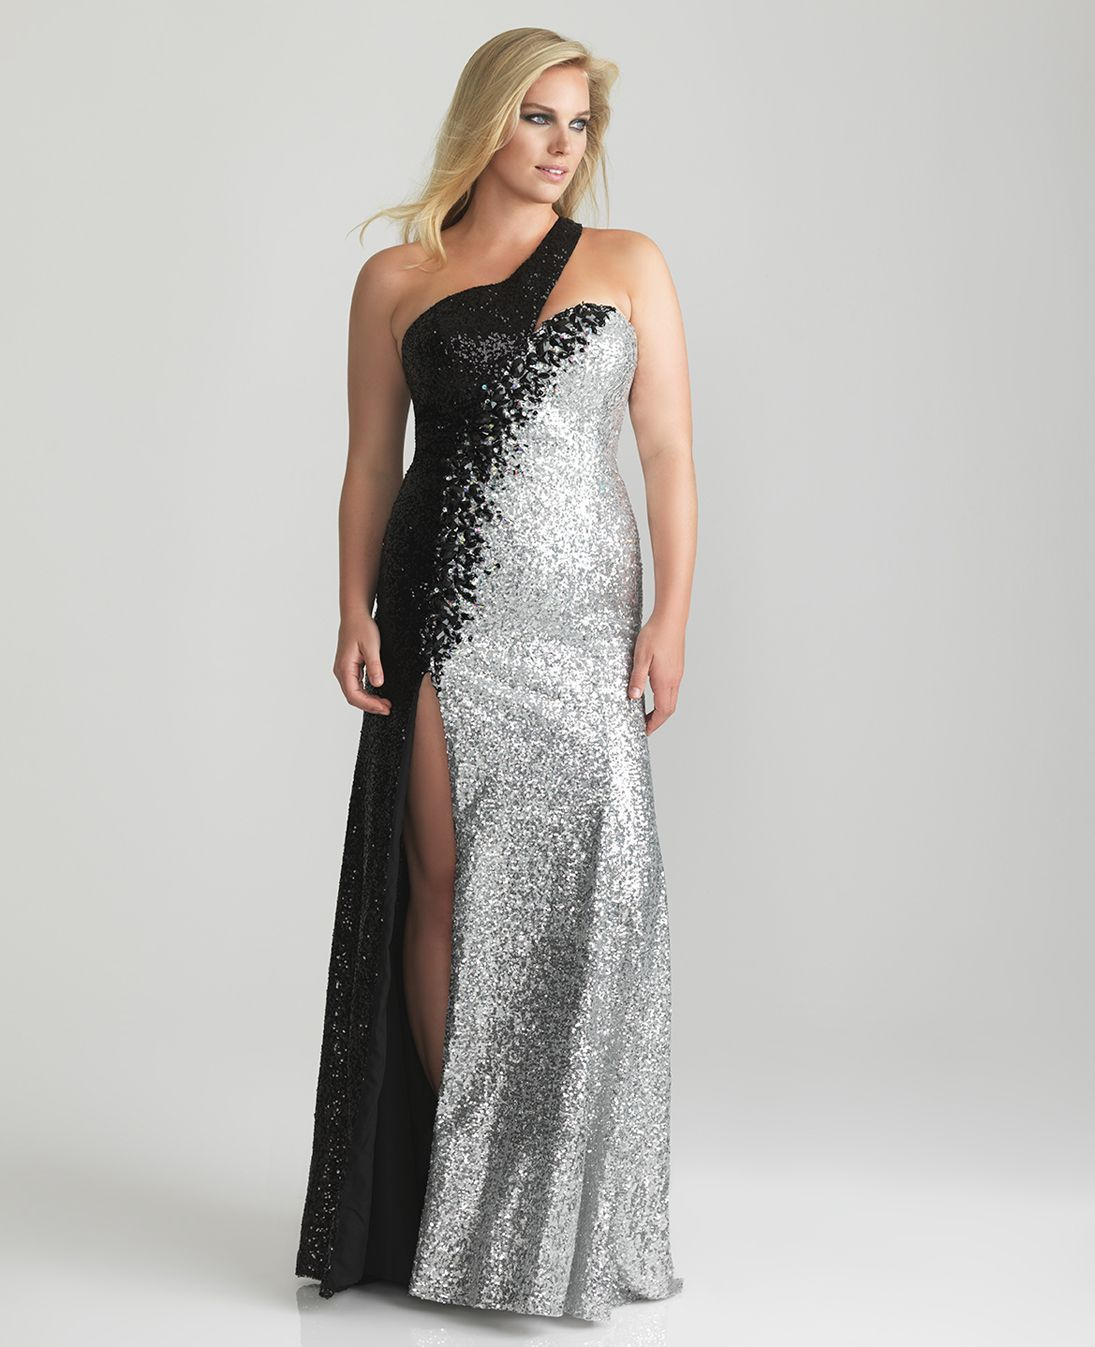 Black & Silver Sequin Sweetheart One Shoulder Plus Size Dress ...